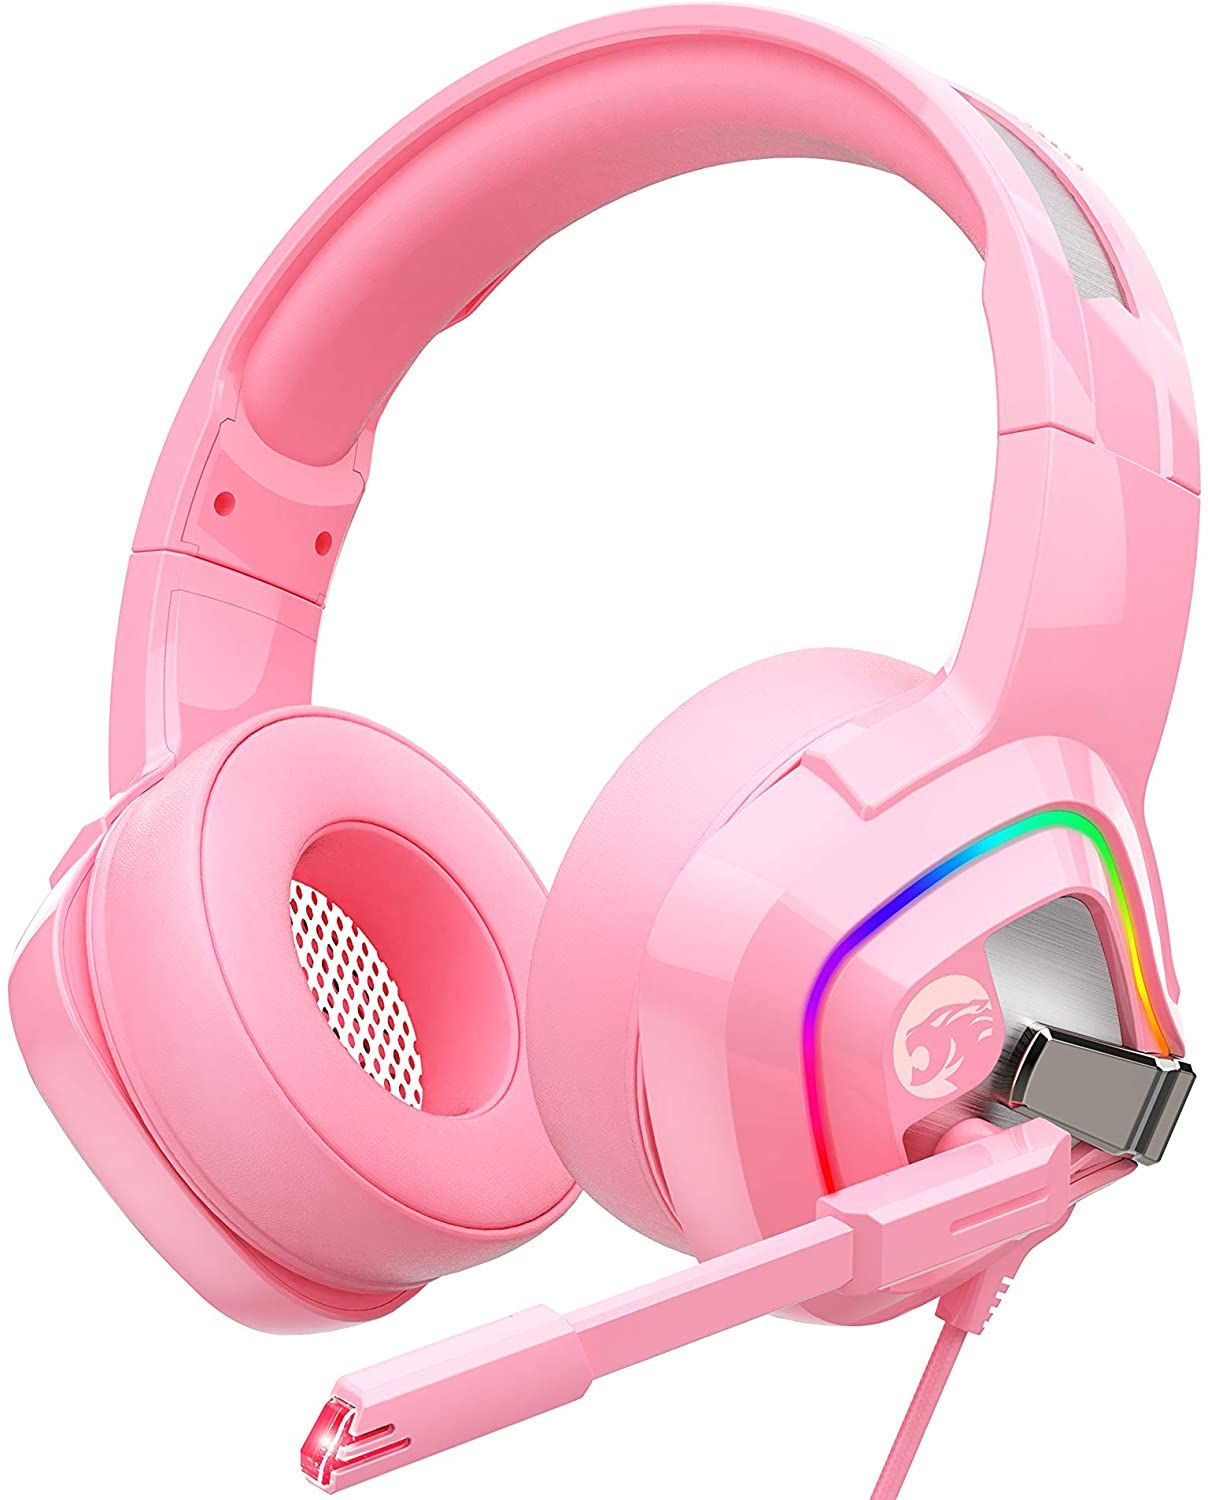 Pink Gaming Headset in 2020 Girl with headphones, Cute